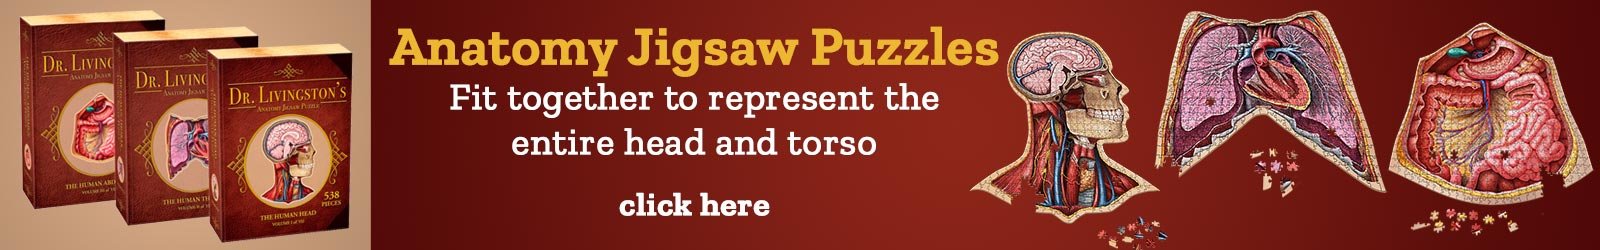 Anatomy Jigsaw Puzzles Fit together to represent the entire head and torso